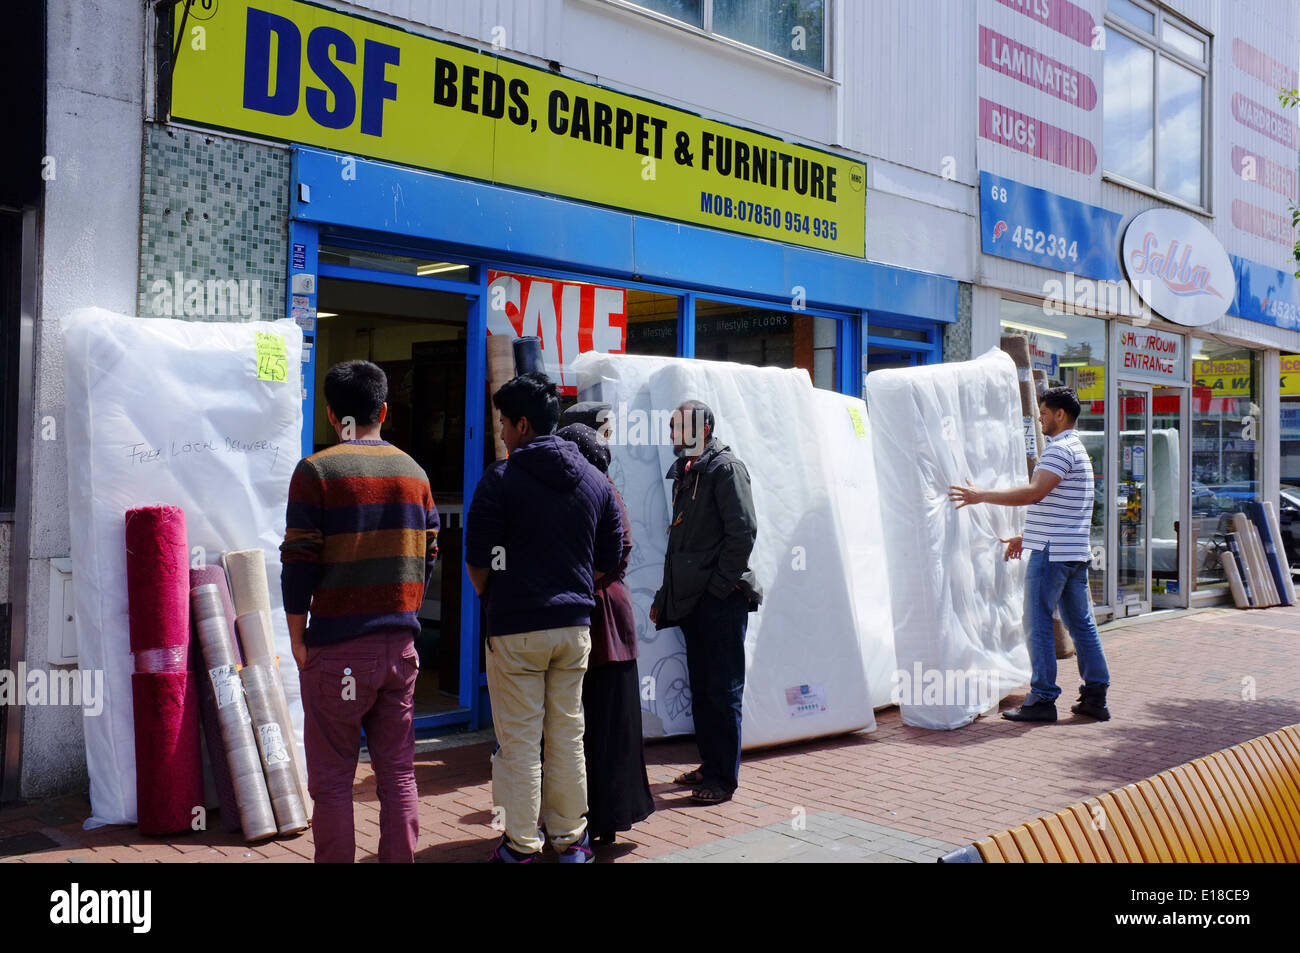 people looking at mattresses on sale in Luton - Stock Image